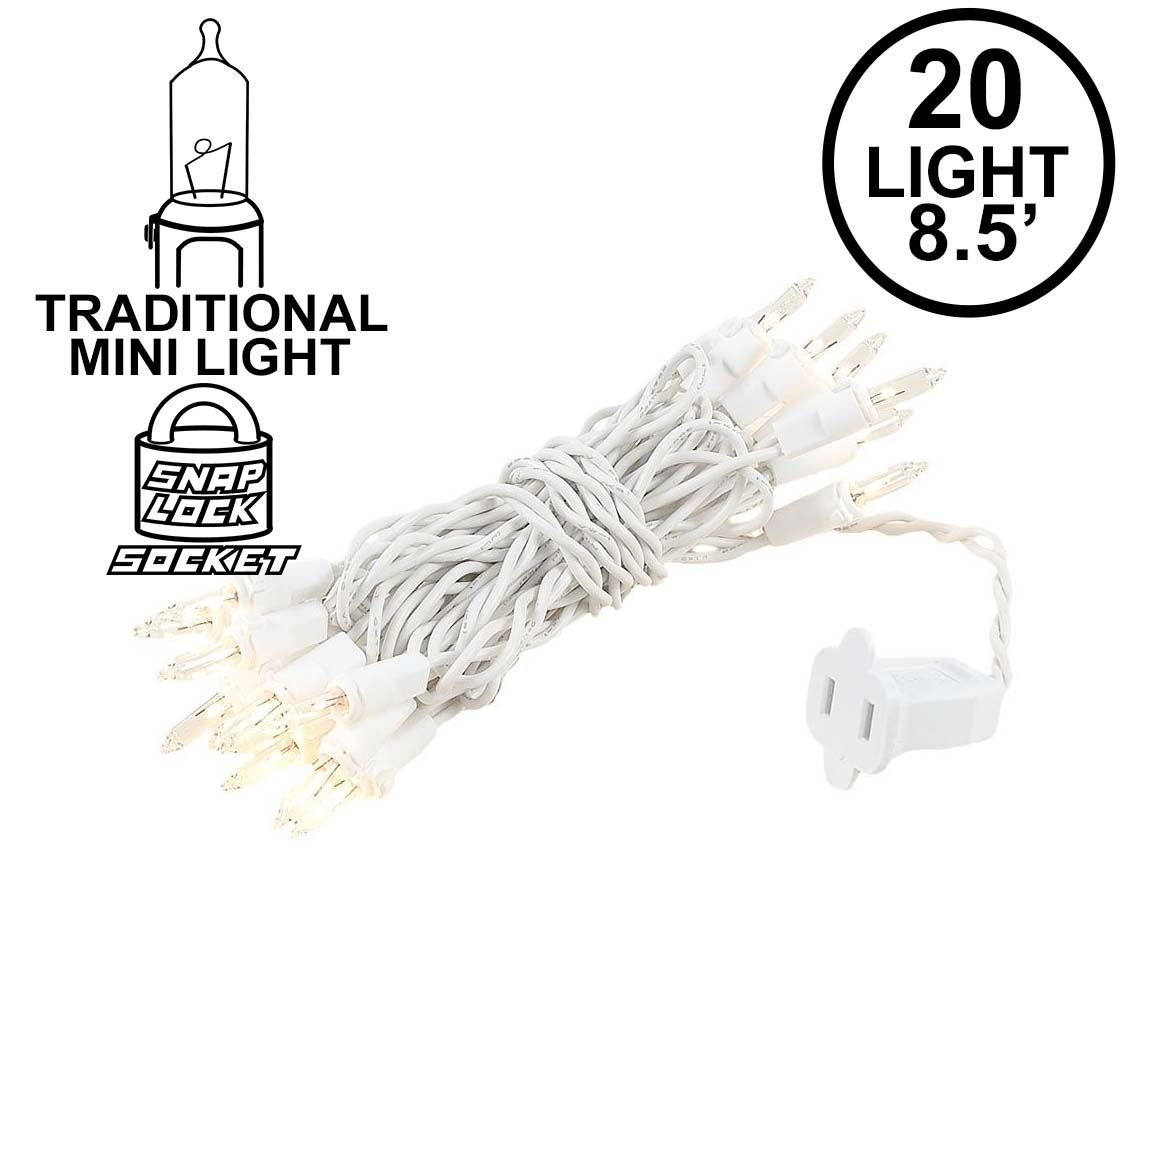 Picture of 20 Light 8.5' Long White Wire Christmas Mini Lights